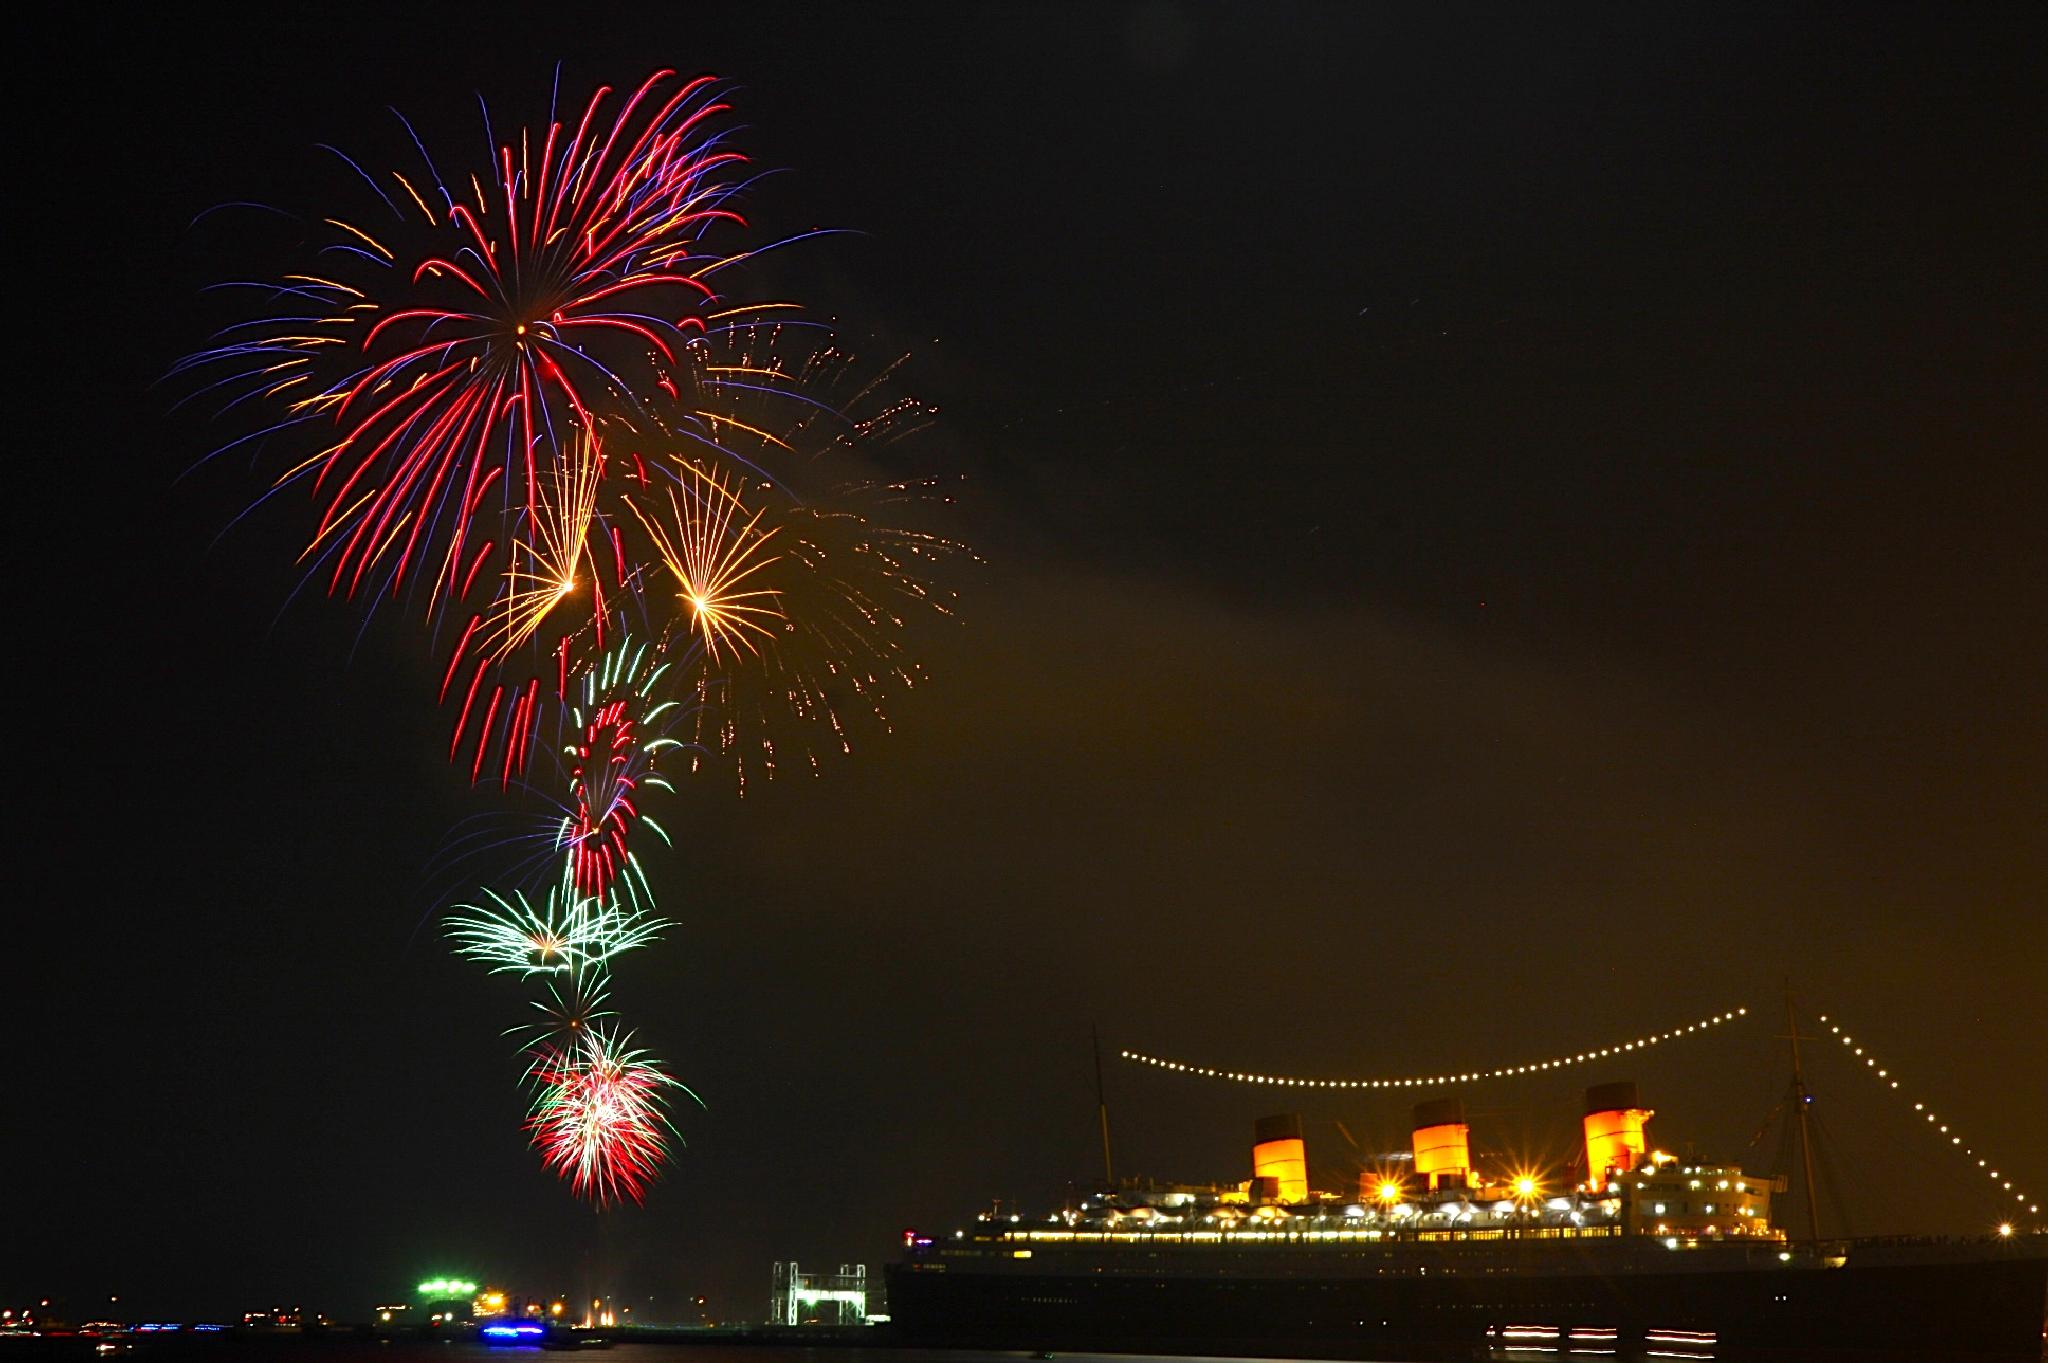 Fireworks Queen Mary by 2003zhp